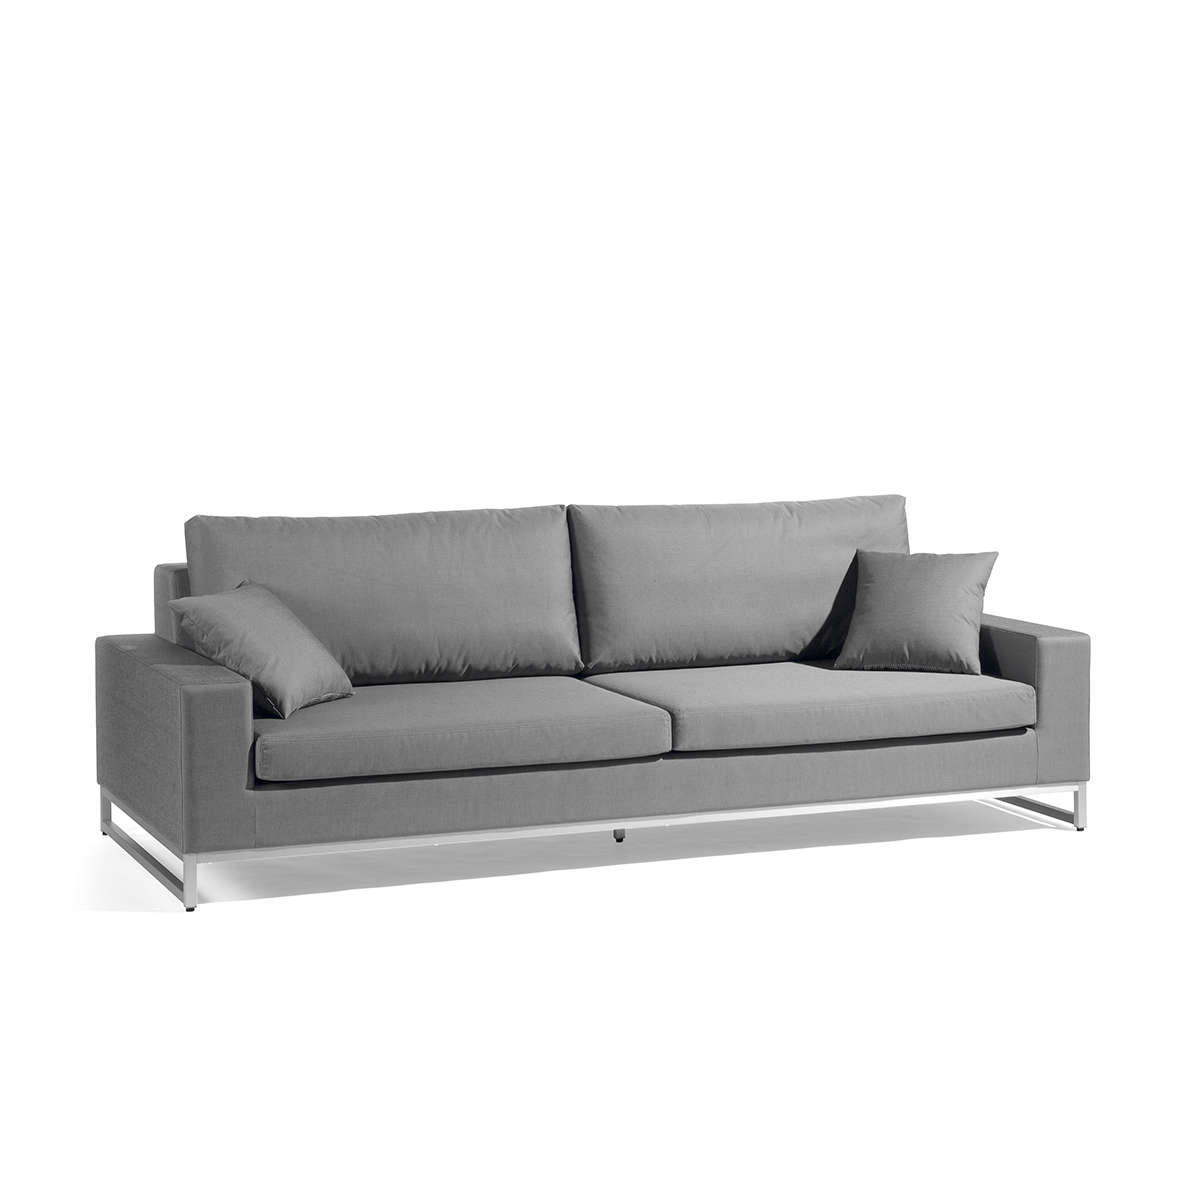 modern garden sofas uk sectional charlotte nc outdoor furniture shades and accessories the